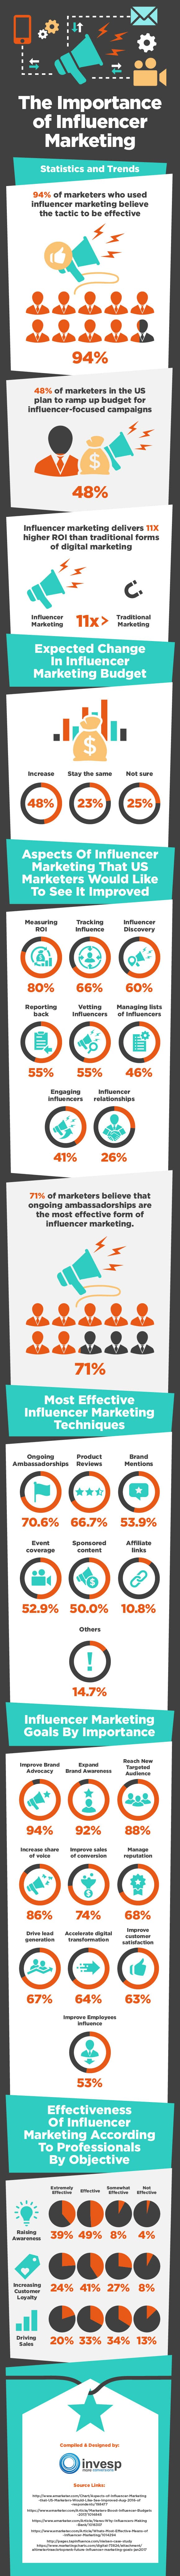 Influencer marketing statistics (infographic)